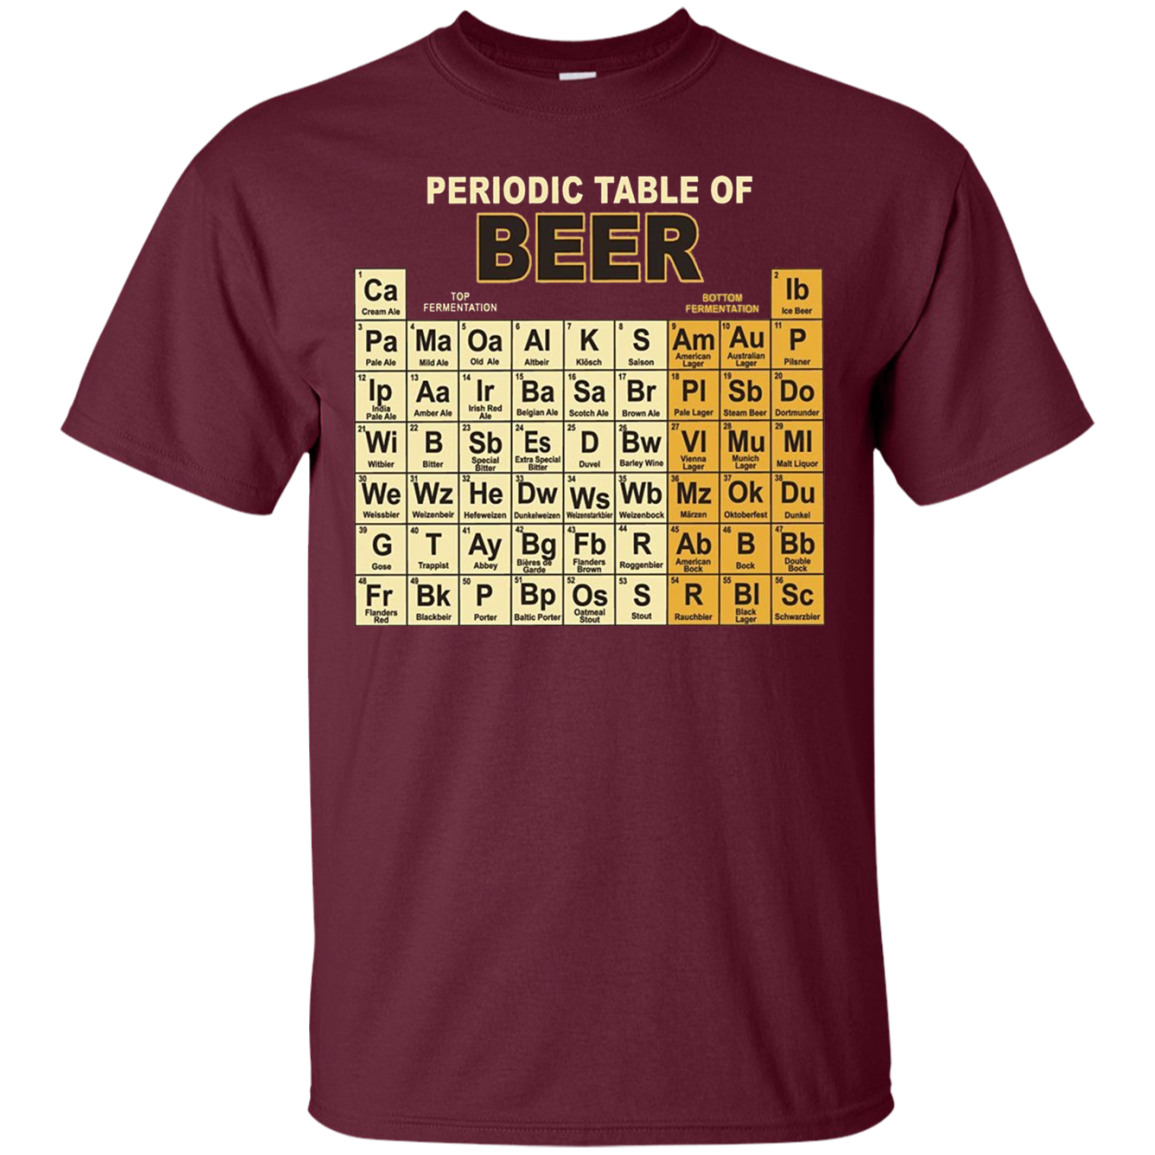 Periodic table of beer t shirt hoodie sweater amun store periodic table of beer t shirt hoodie sweater shapes of water urtaz Gallery